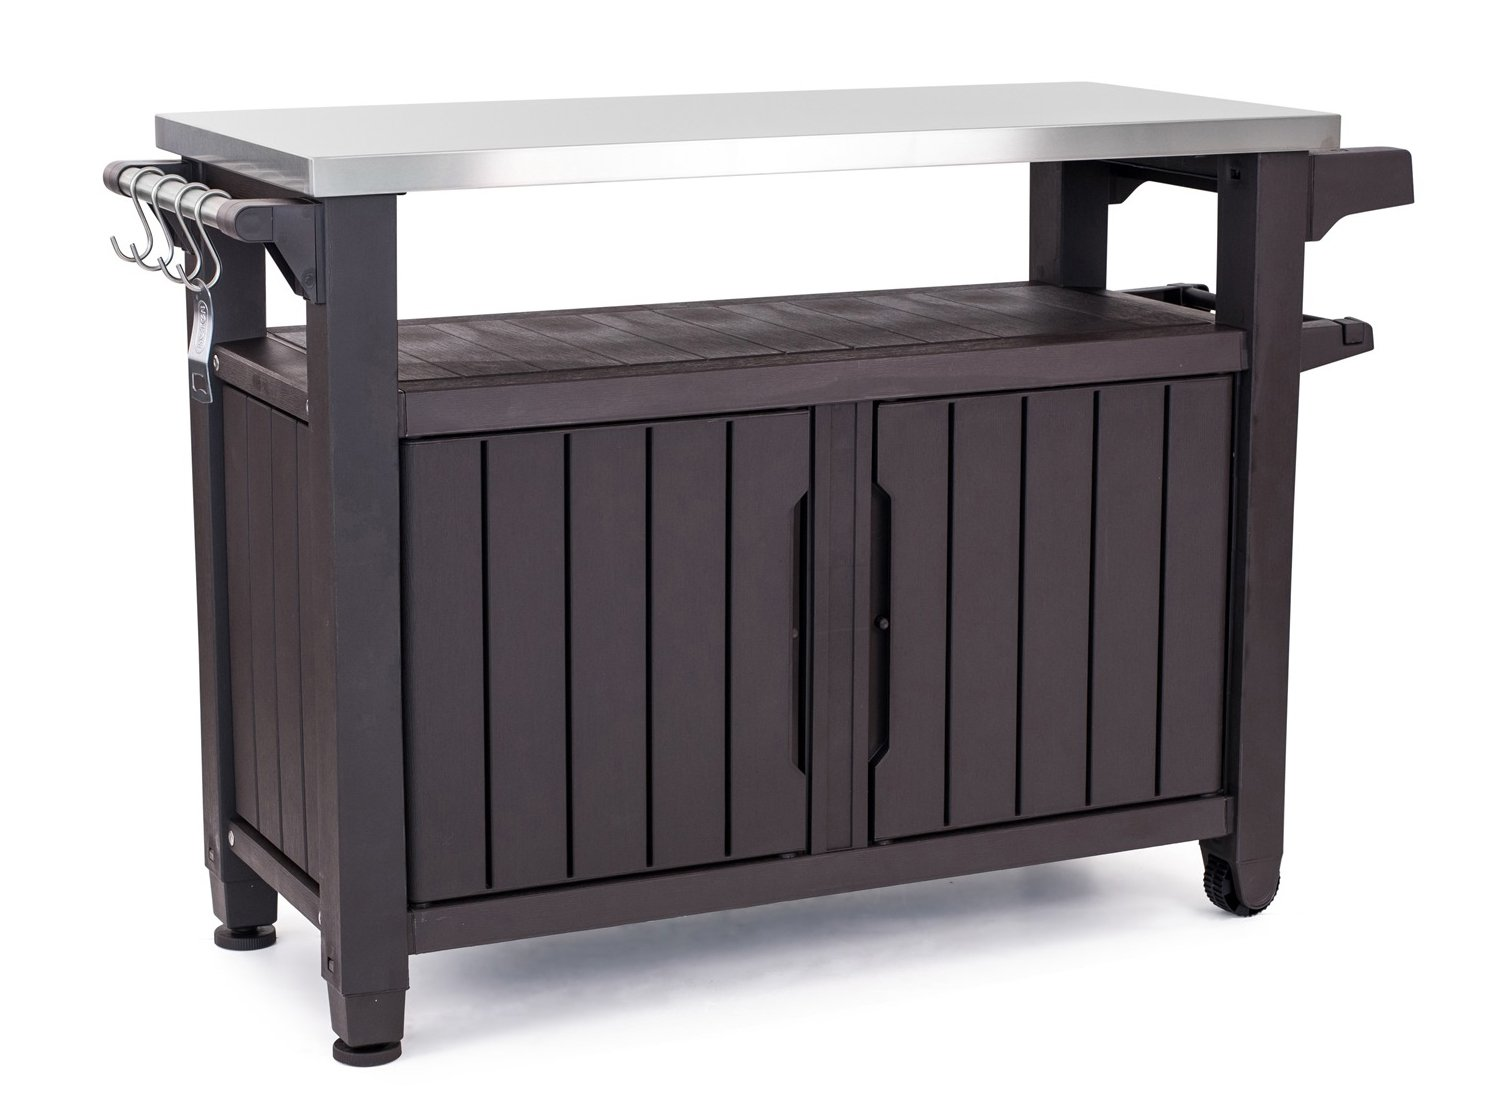 keter unity indoor outdoor entertainment bbq storage sideboard table prep station serving cart with metal top brown garden mission style lamps large wall clocks wine cabinet